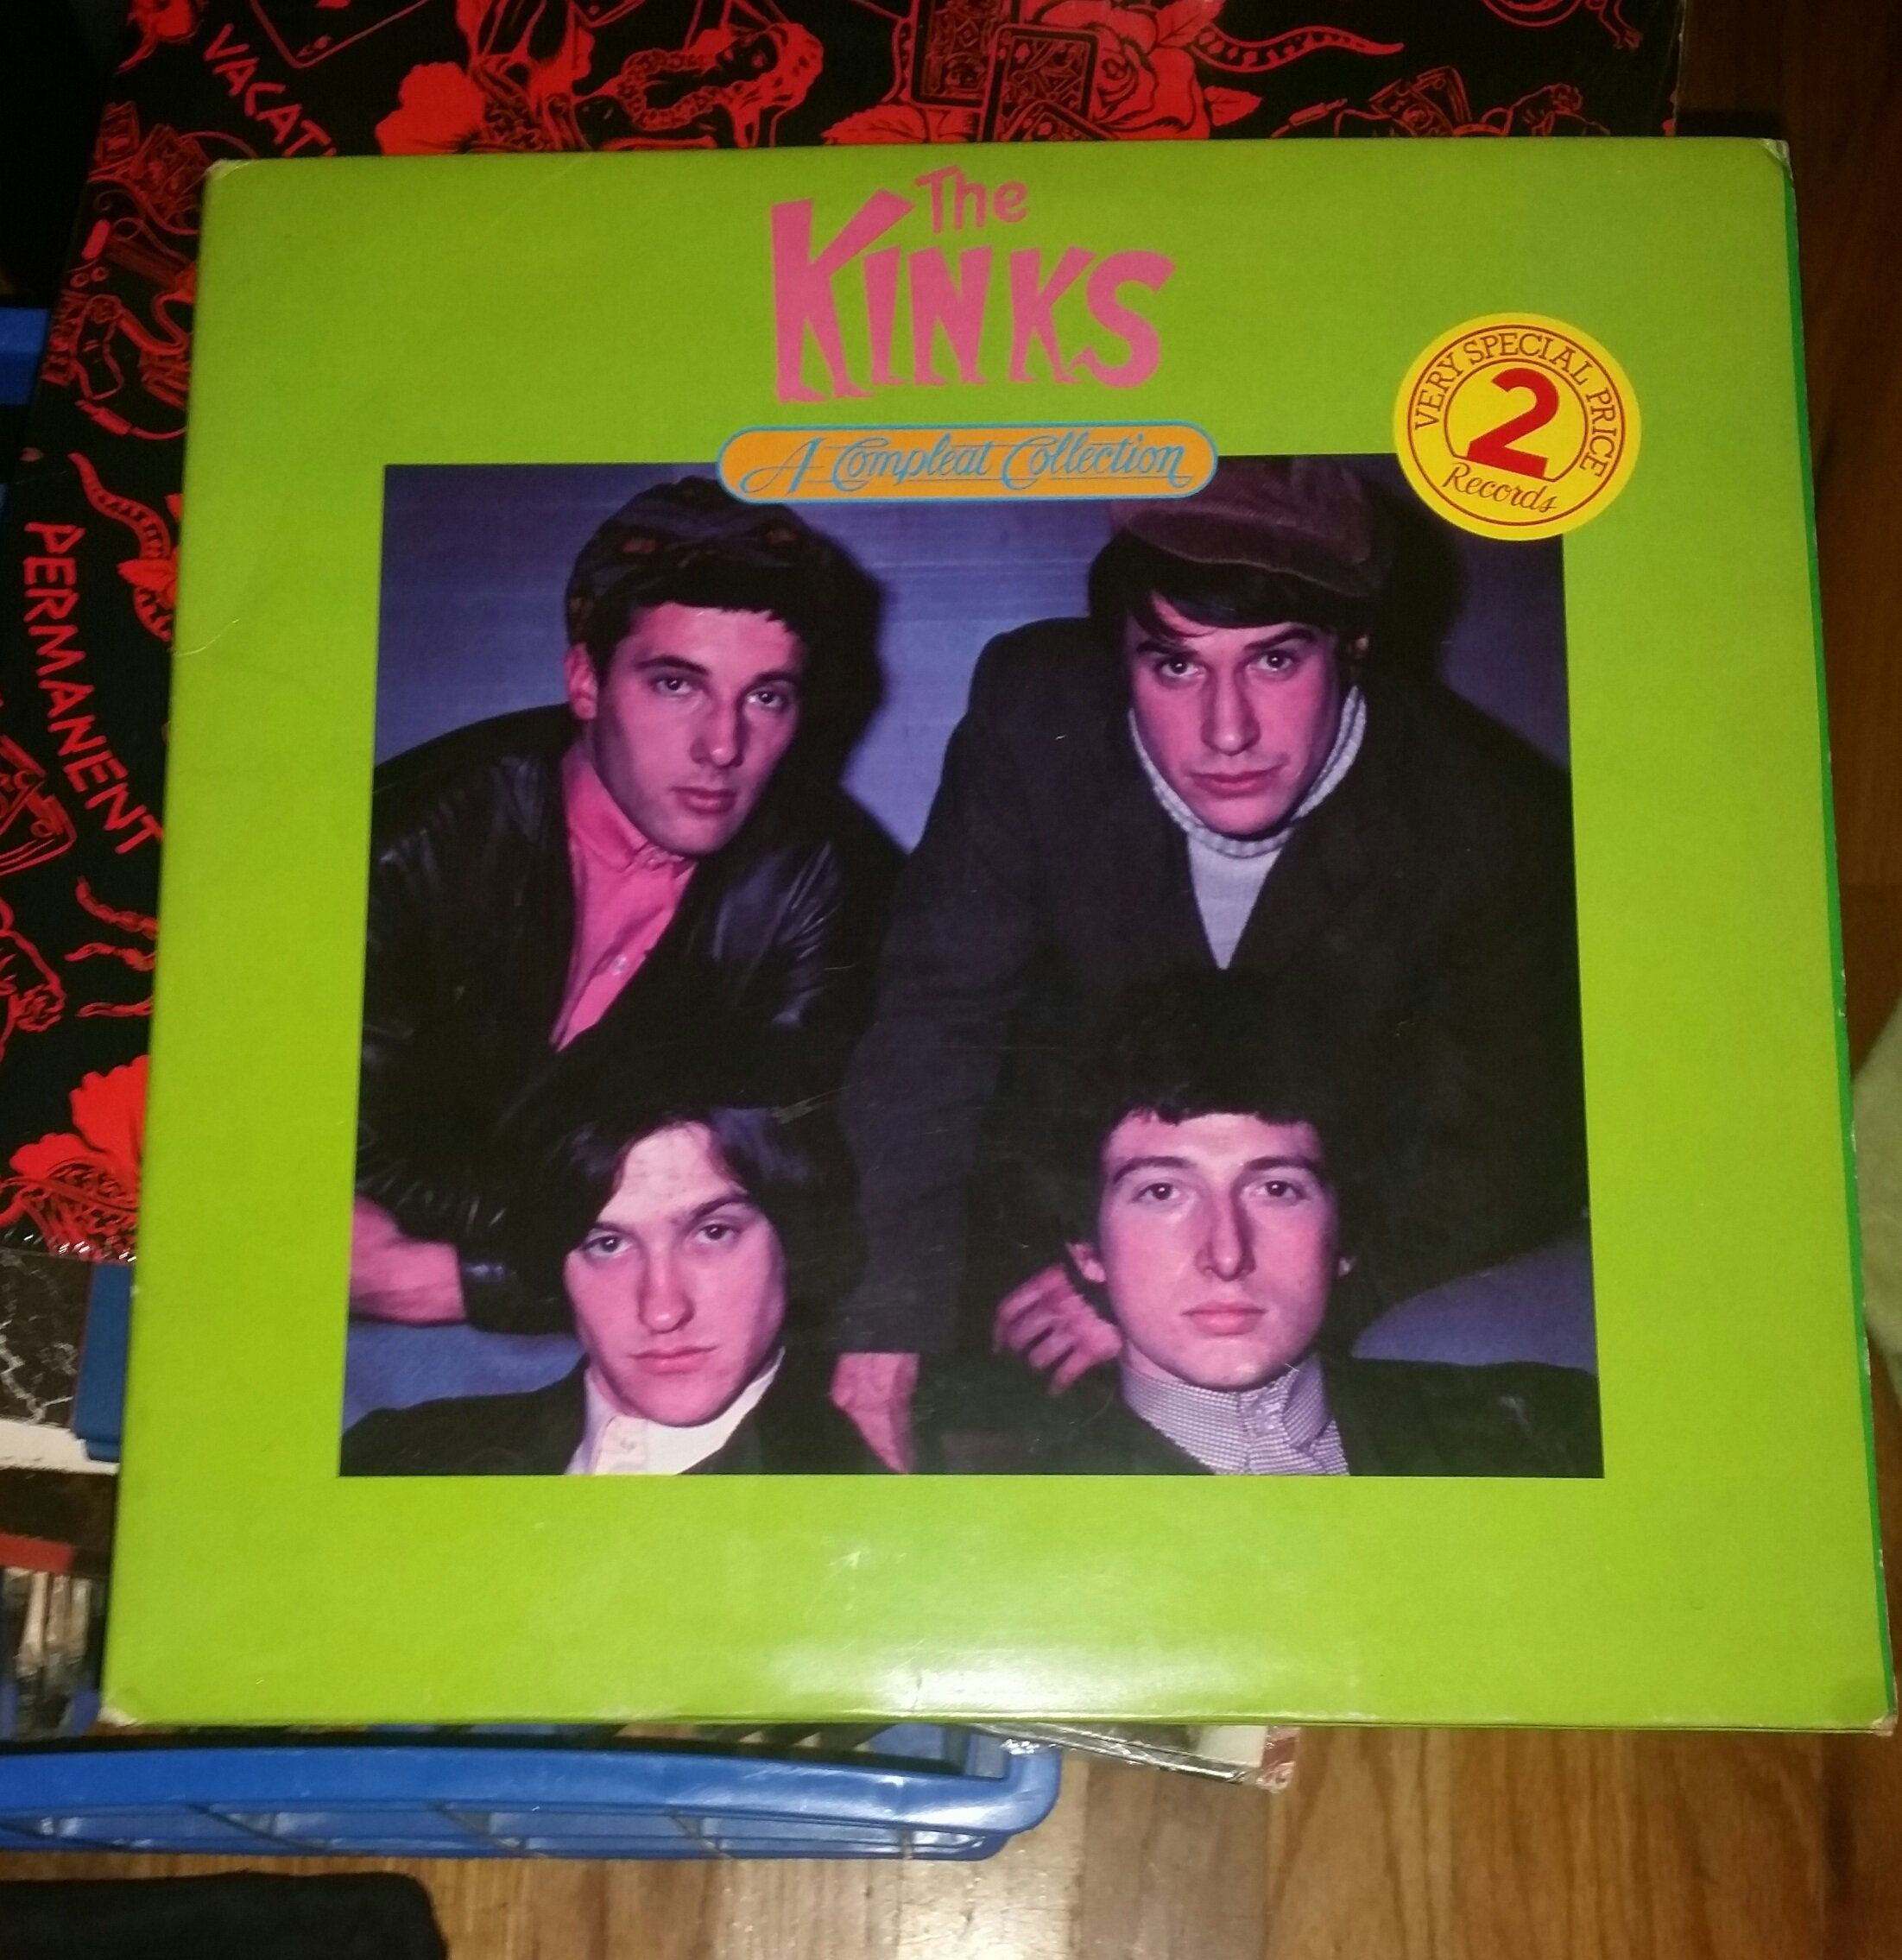 The Kinks Rare 1984 A Complete Collection Excellent, 2